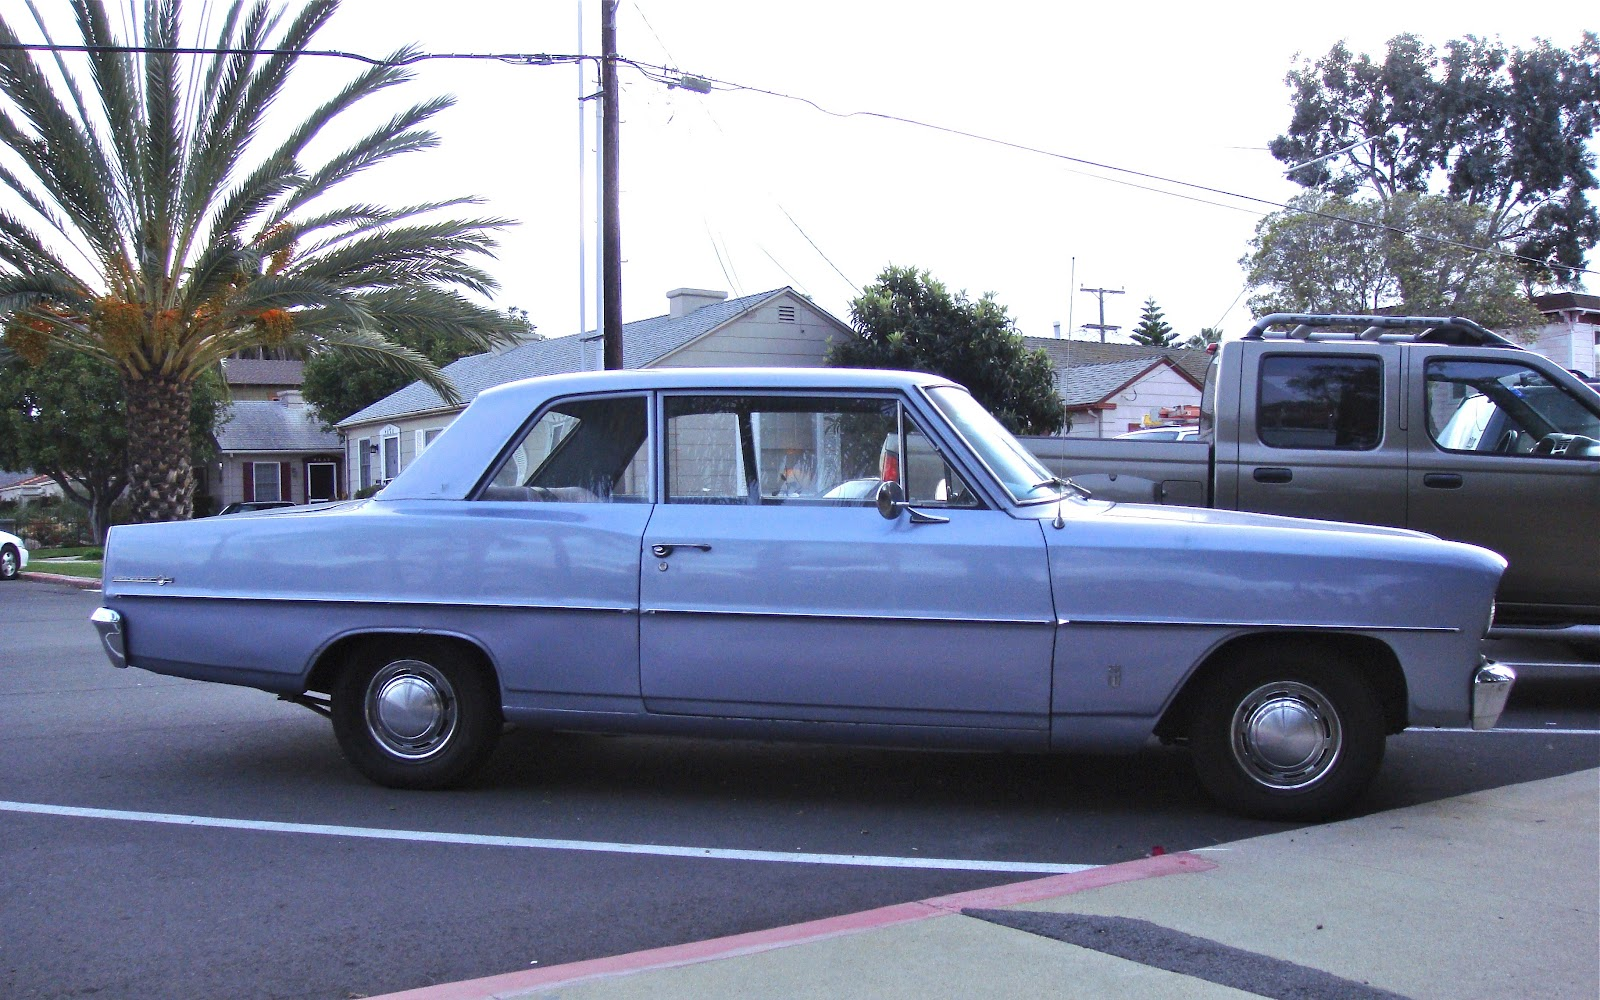 All Chevy chevy 2 2 : All Chevy » 1966 Chevy 2 Nova - Old Chevy Photos Collection, All ...